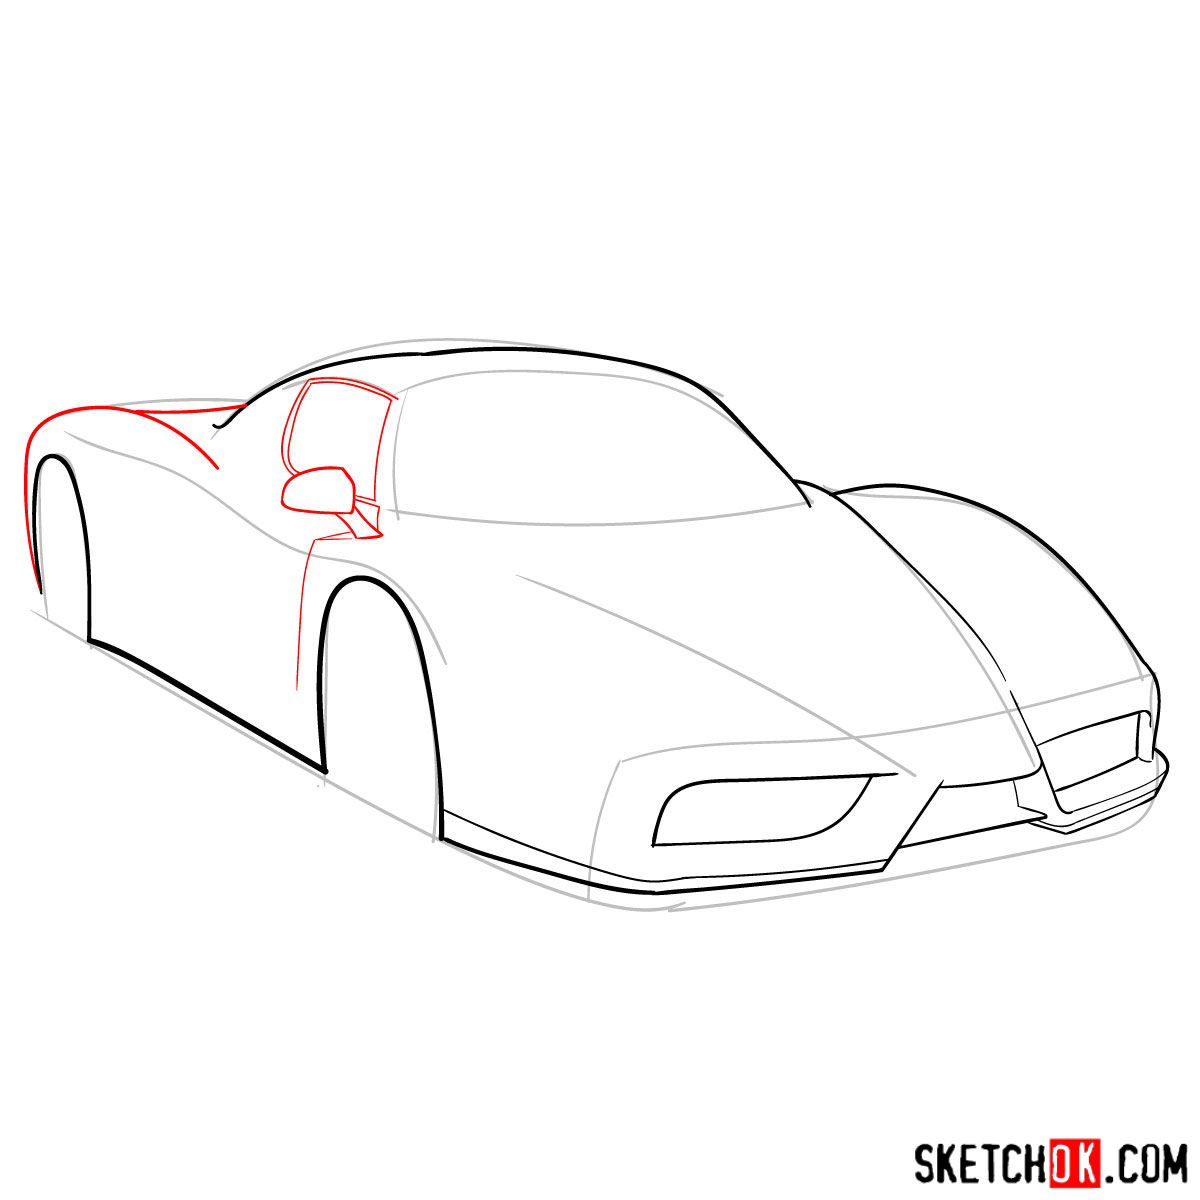 How to draw Ferrari Enzo legendary supercar - step 05